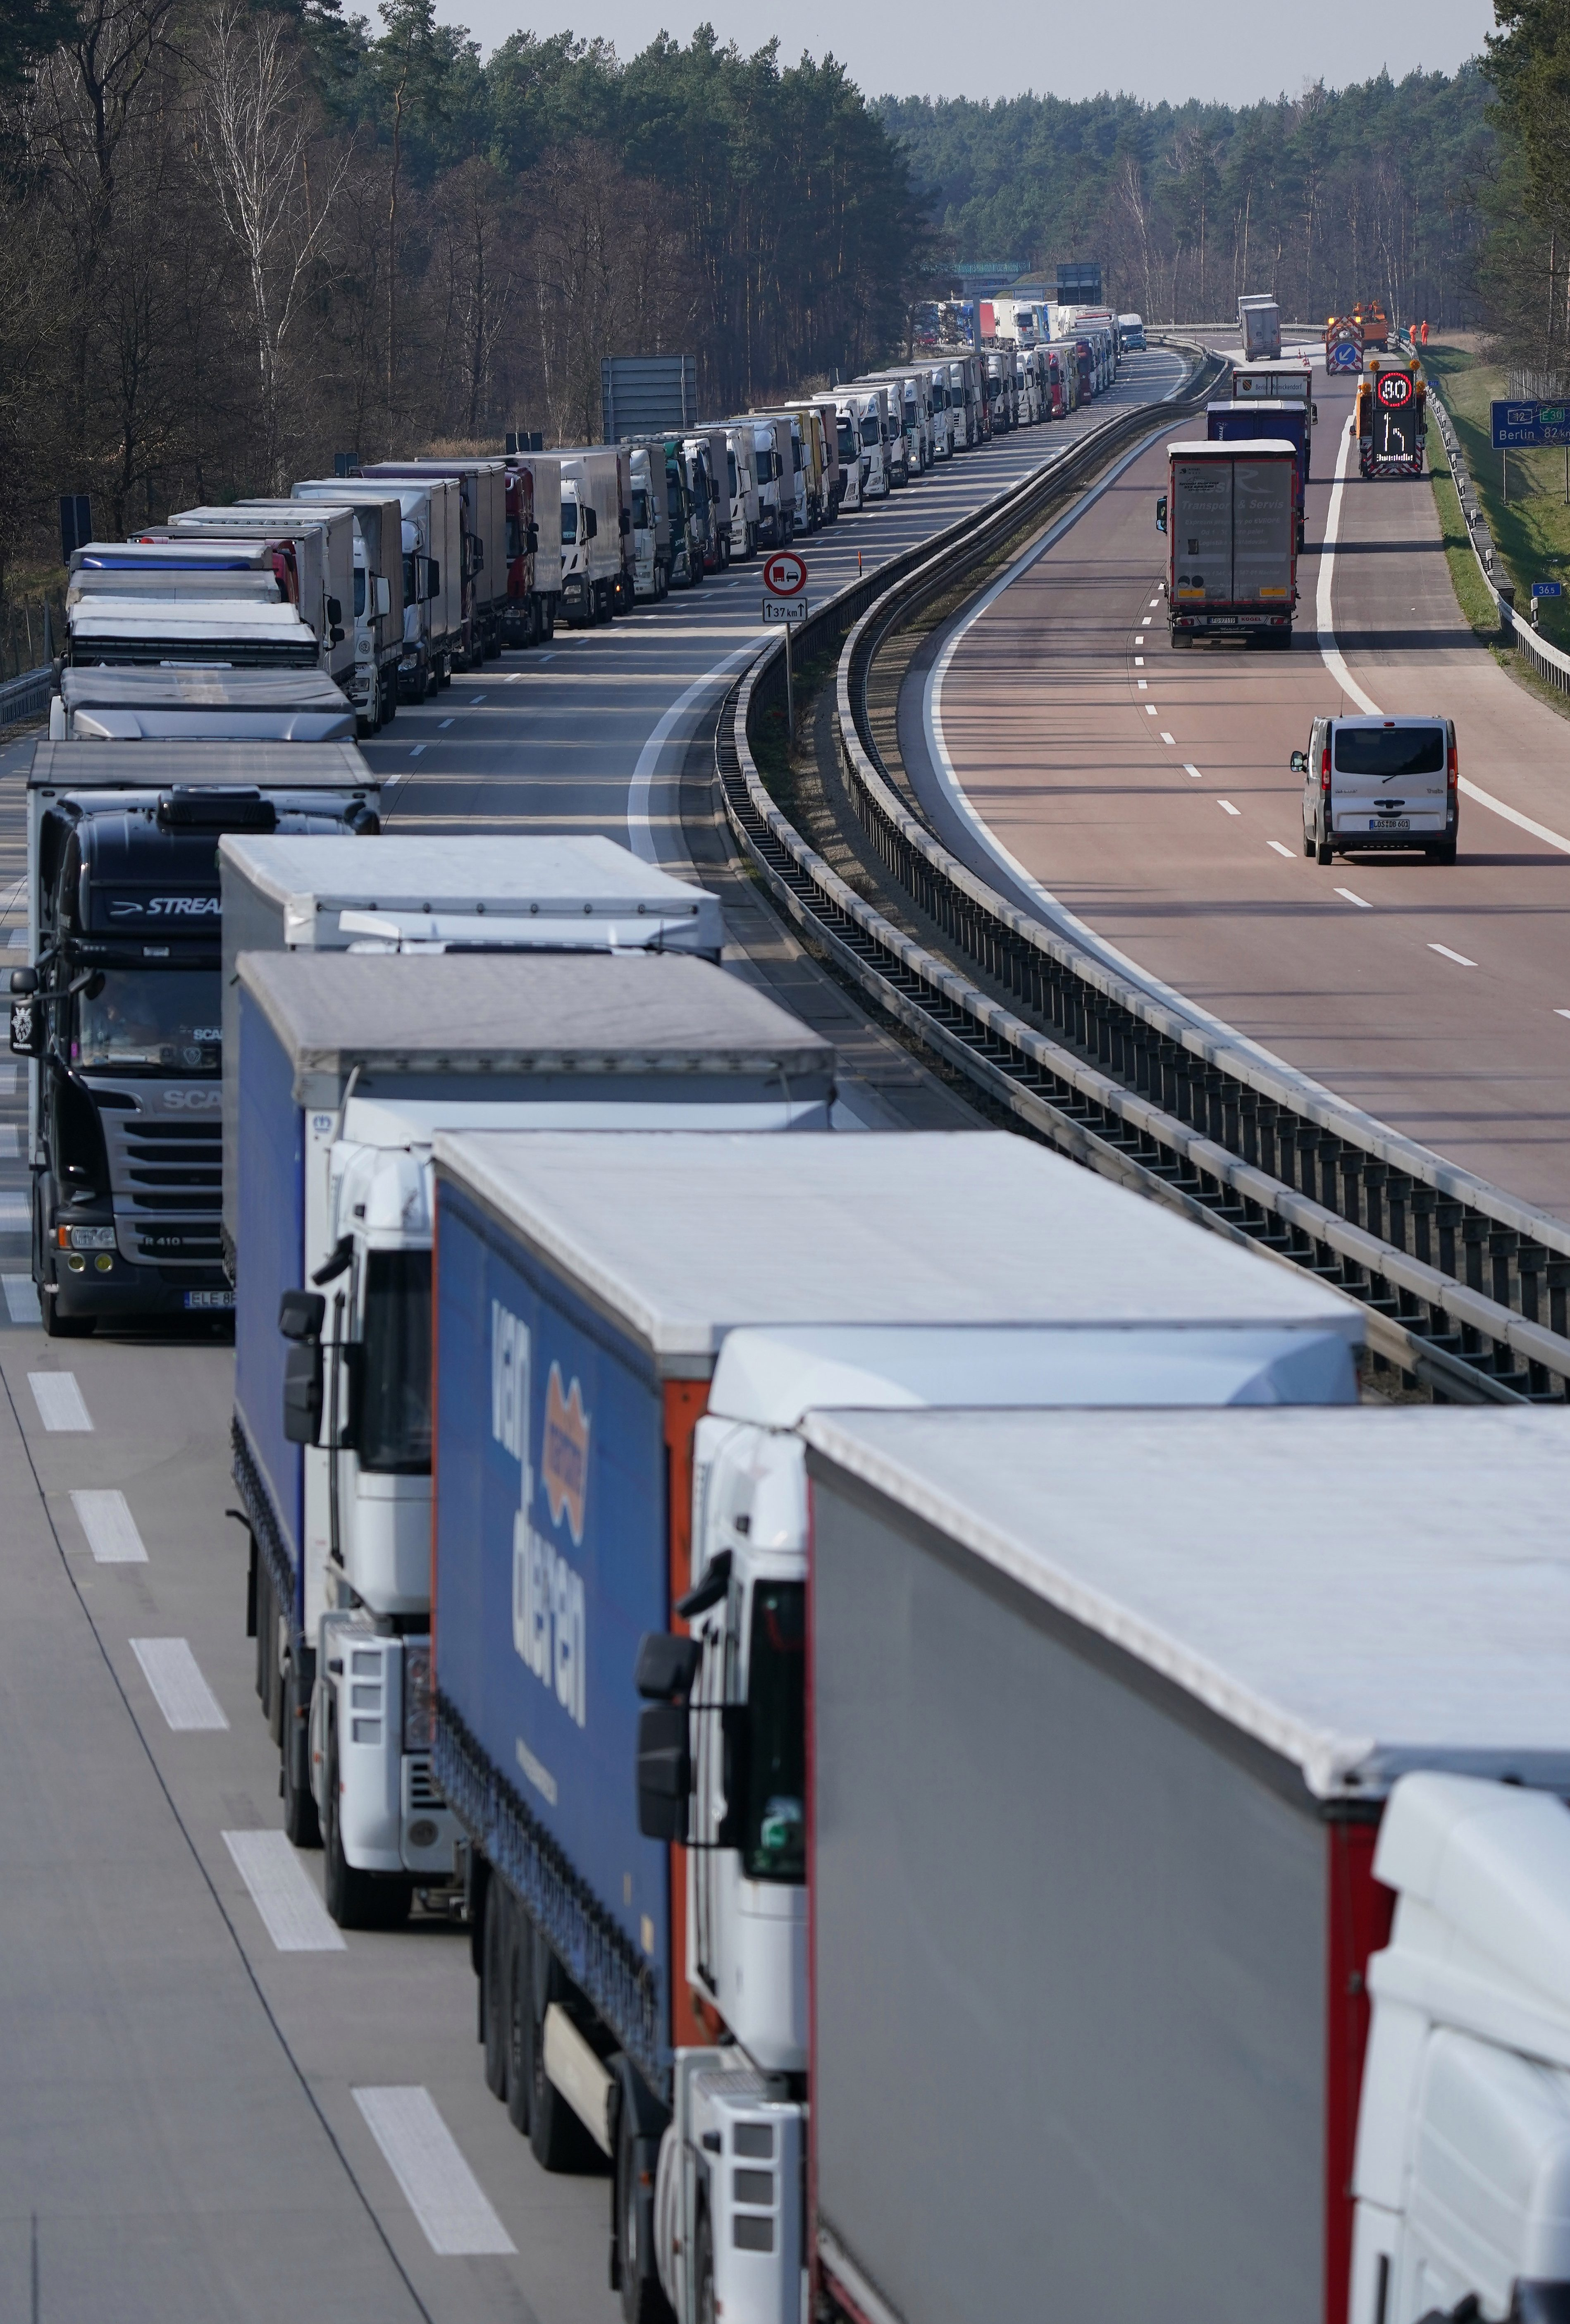 Coronavirus travel hell for Brits with 40 MILE queues as Europe ...